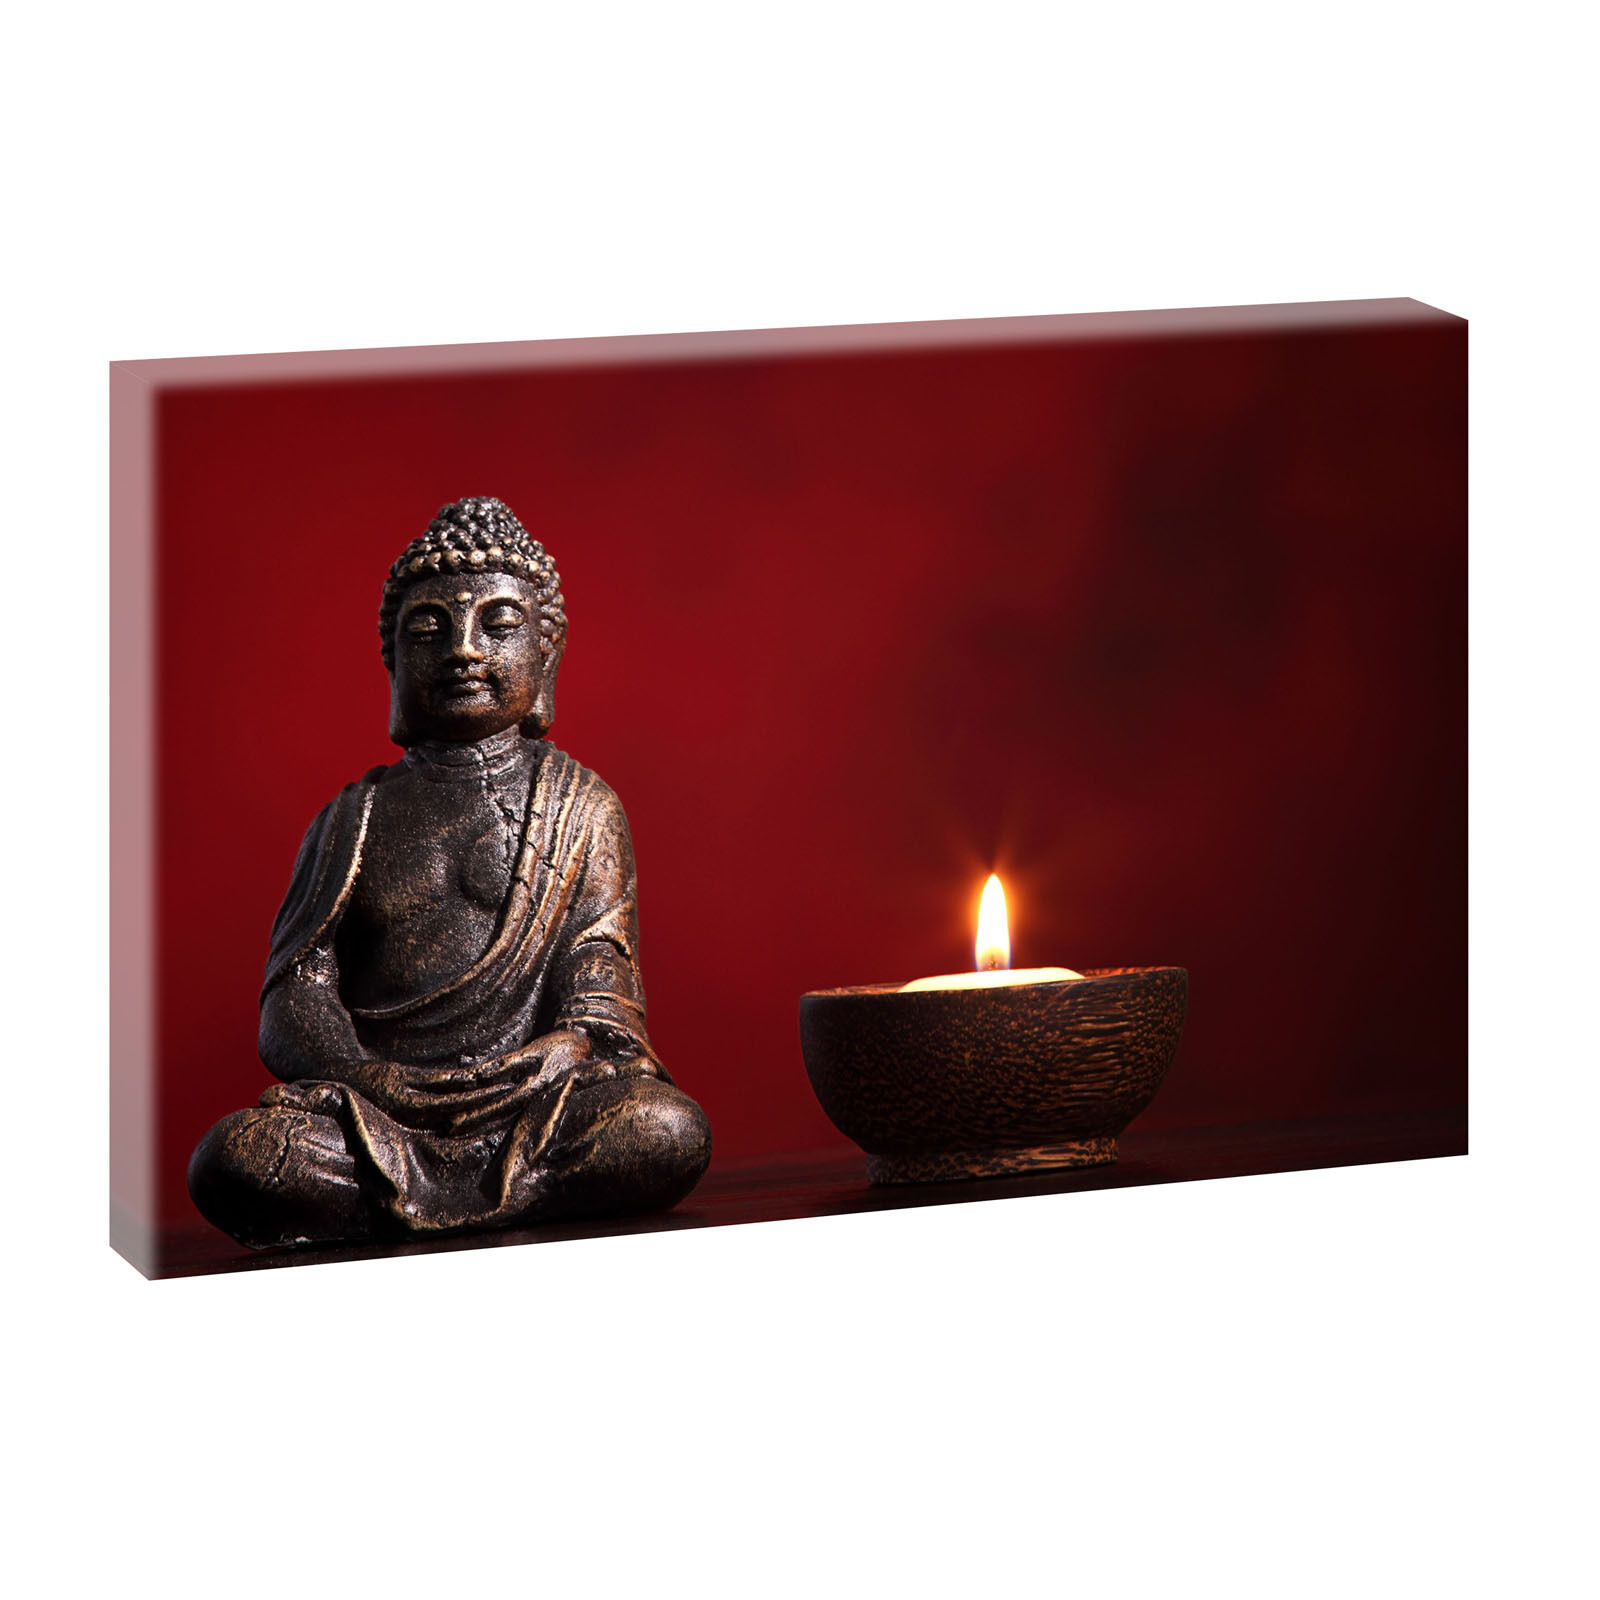 buddha panorama bild feng shui fotoleinwand poster wandbild 100 cm 65 cm 643 eur 29 90. Black Bedroom Furniture Sets. Home Design Ideas